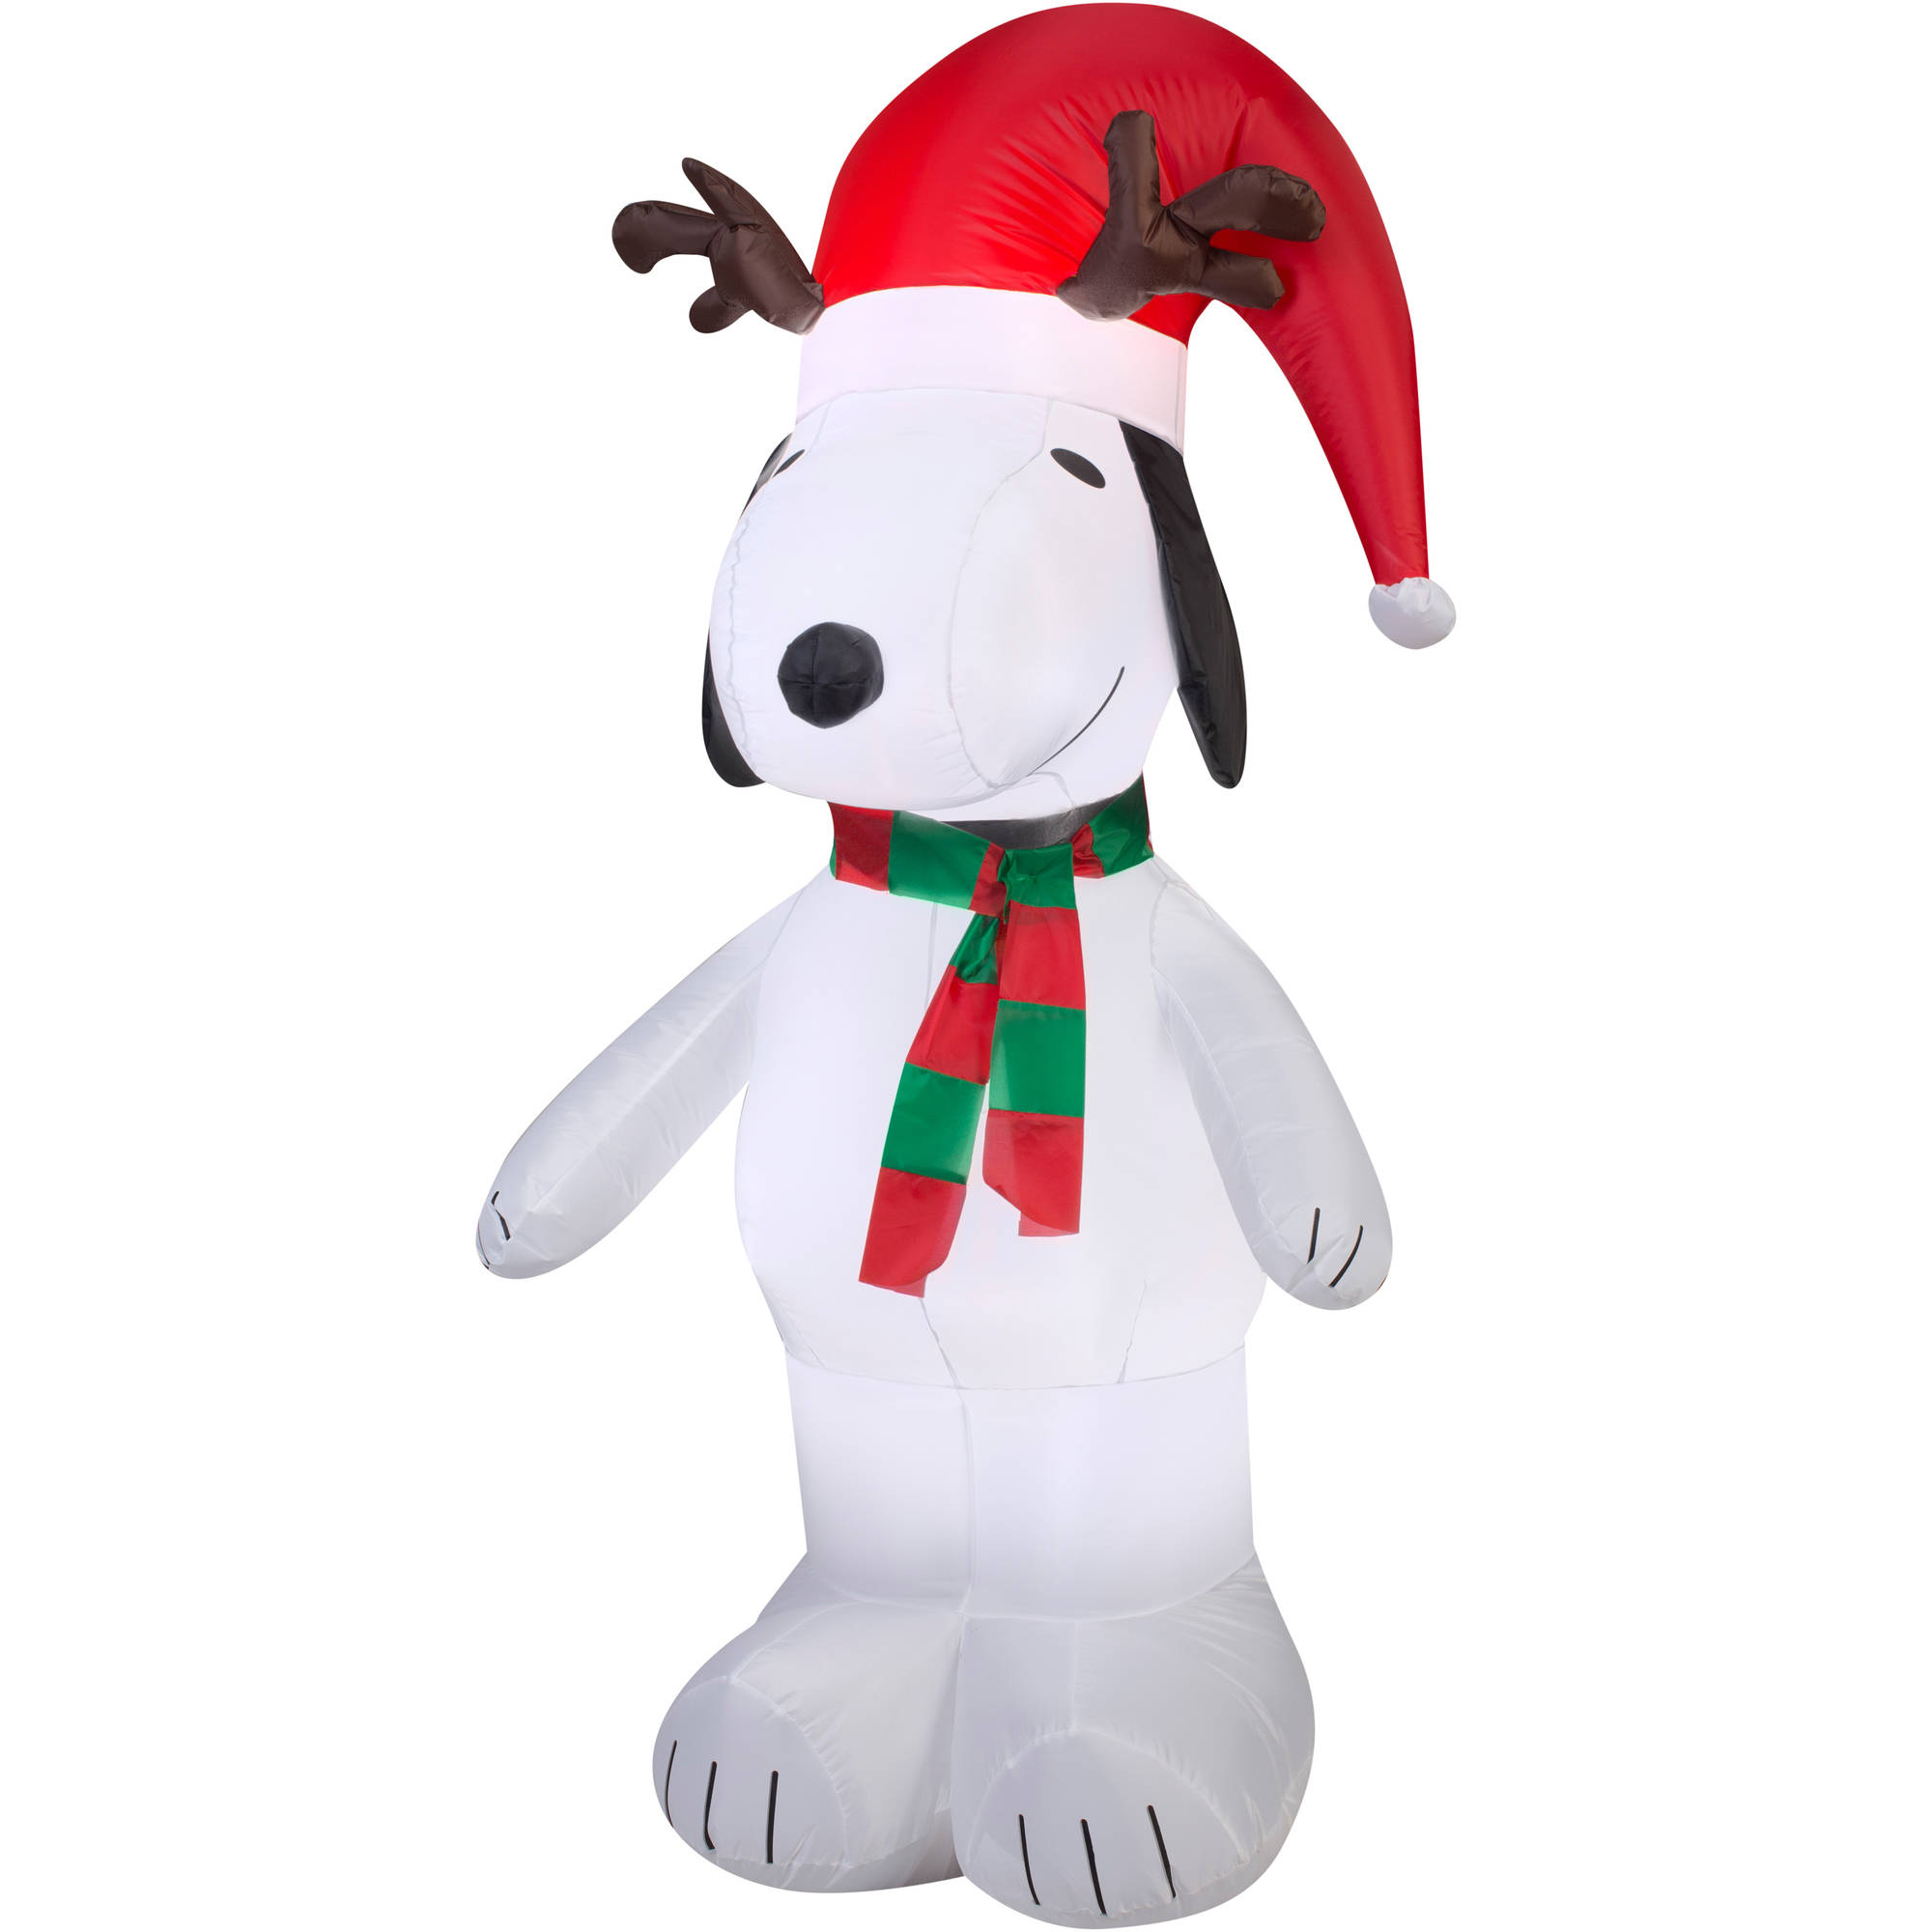 Snoopy outdoor christmas decorations - 5 Airblown Inflatable Snoopy With Antlers And Santa Hat Christmas Inflatable Walmart Com